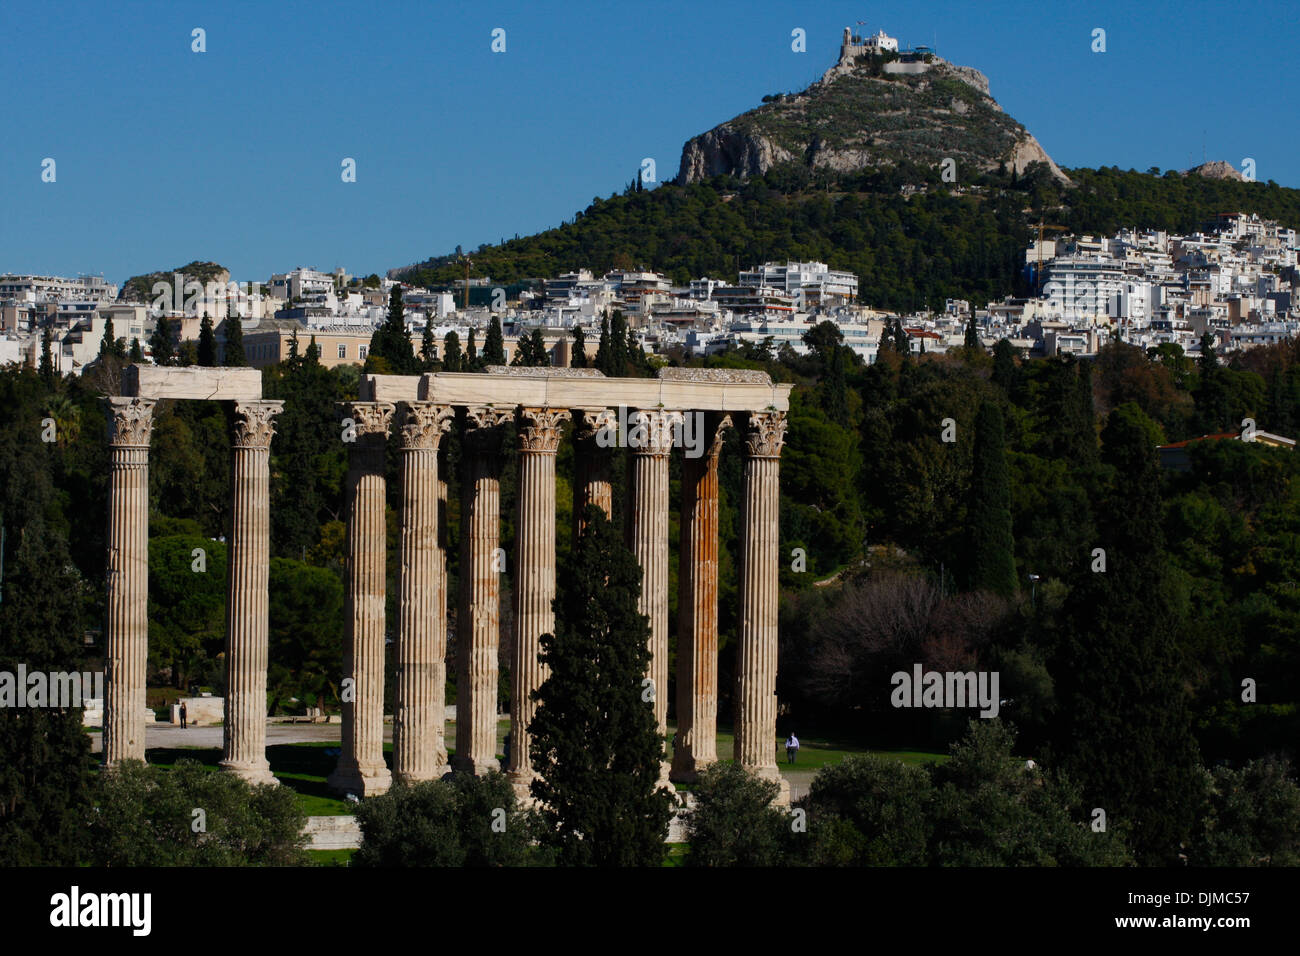 Temple of Olympian Zeus. The historic center of Athens from Hotel rooftops. - Stock Image